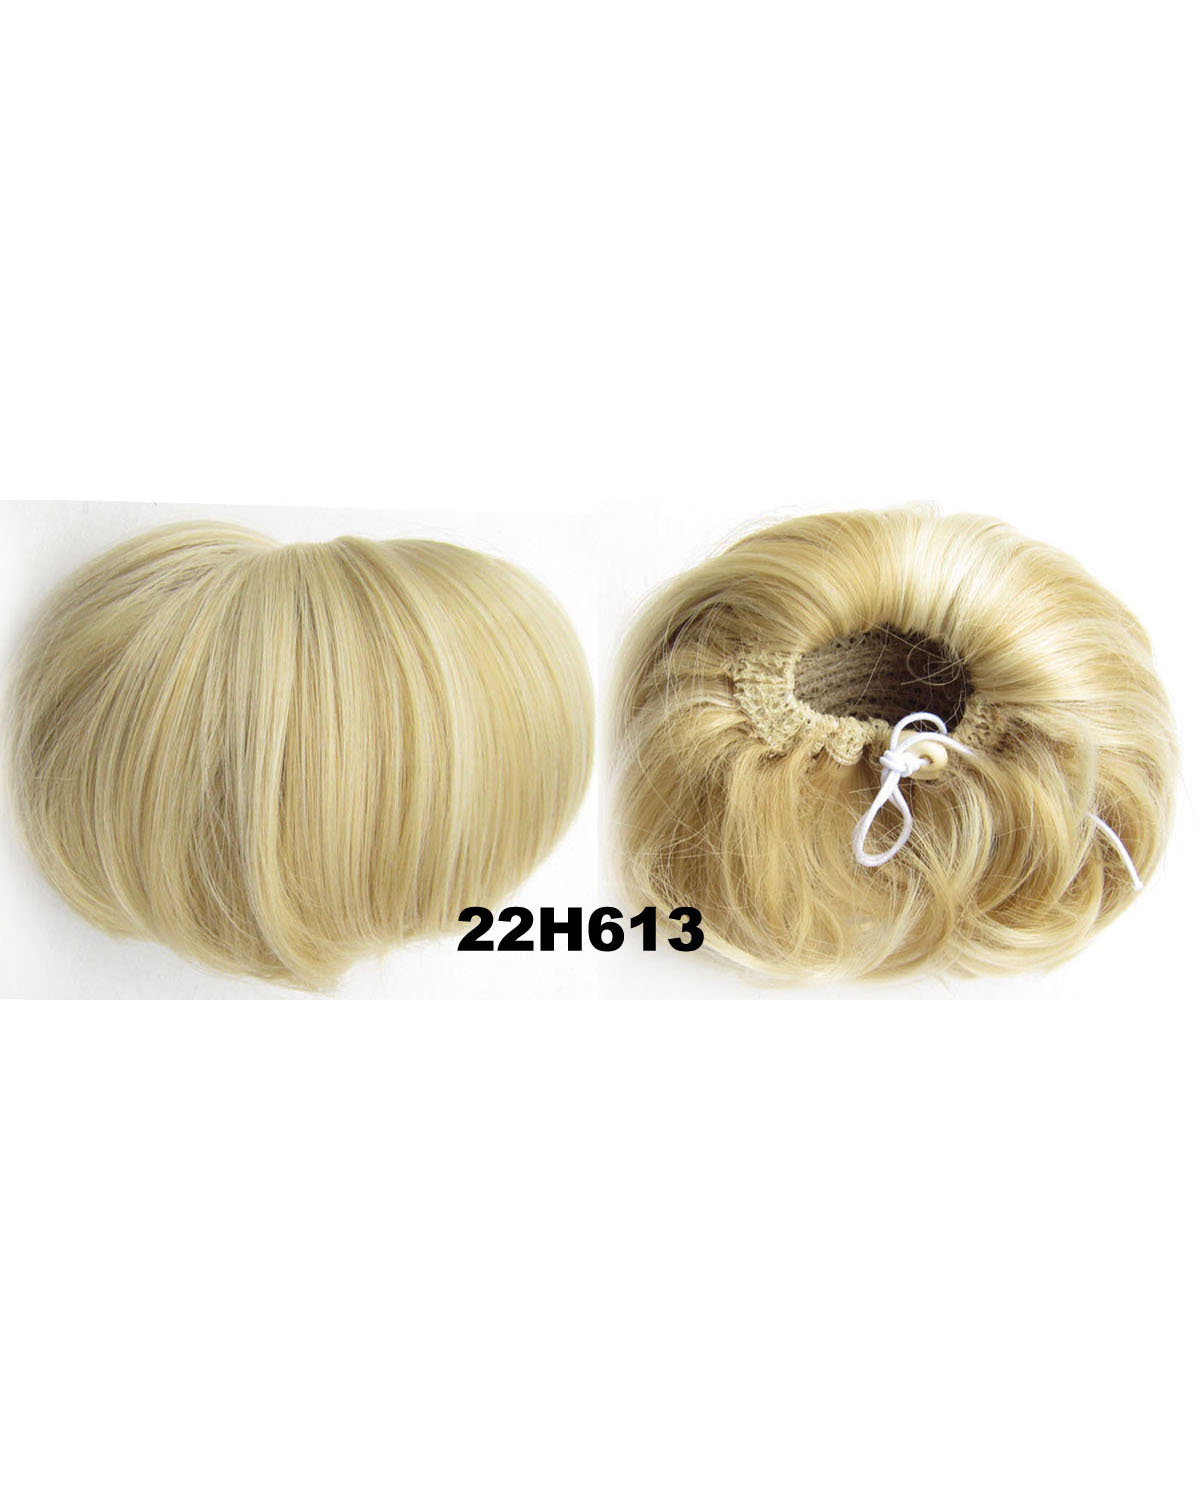 Ladies Fine Straight Short Hair Buns Drawstring Synthetic Hair Extension Bride Scrunchies 22H613